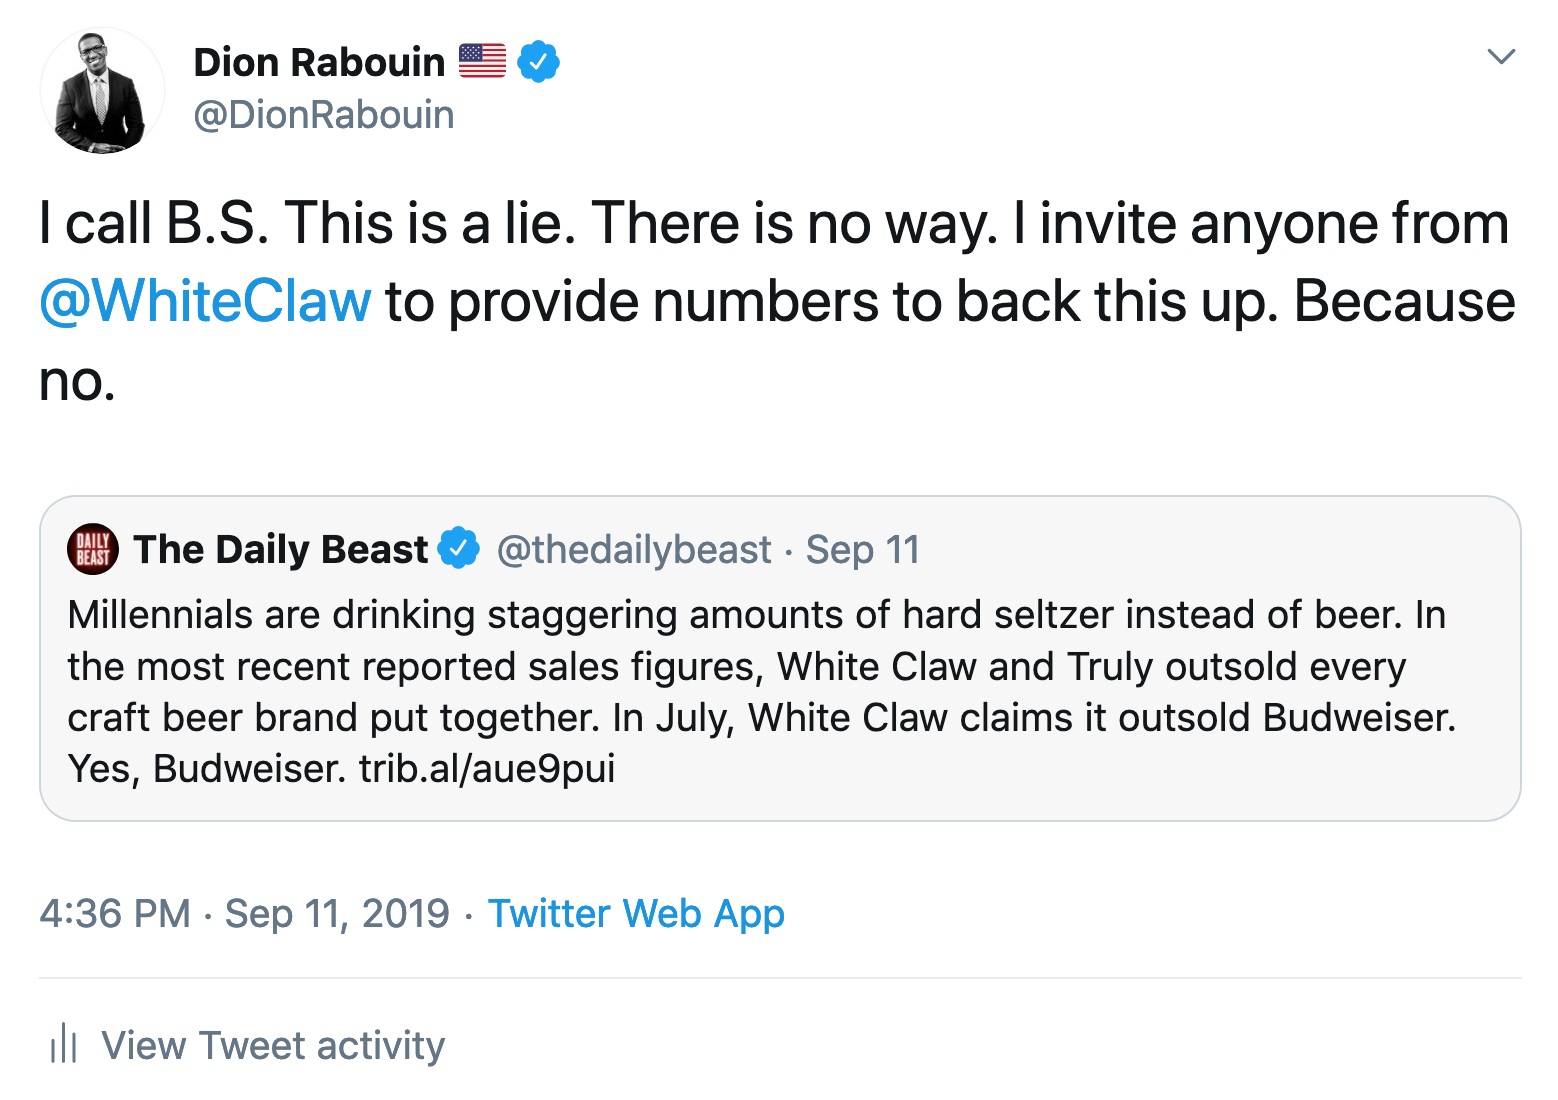 A tweet from Twitter genius Dion Rabouin.